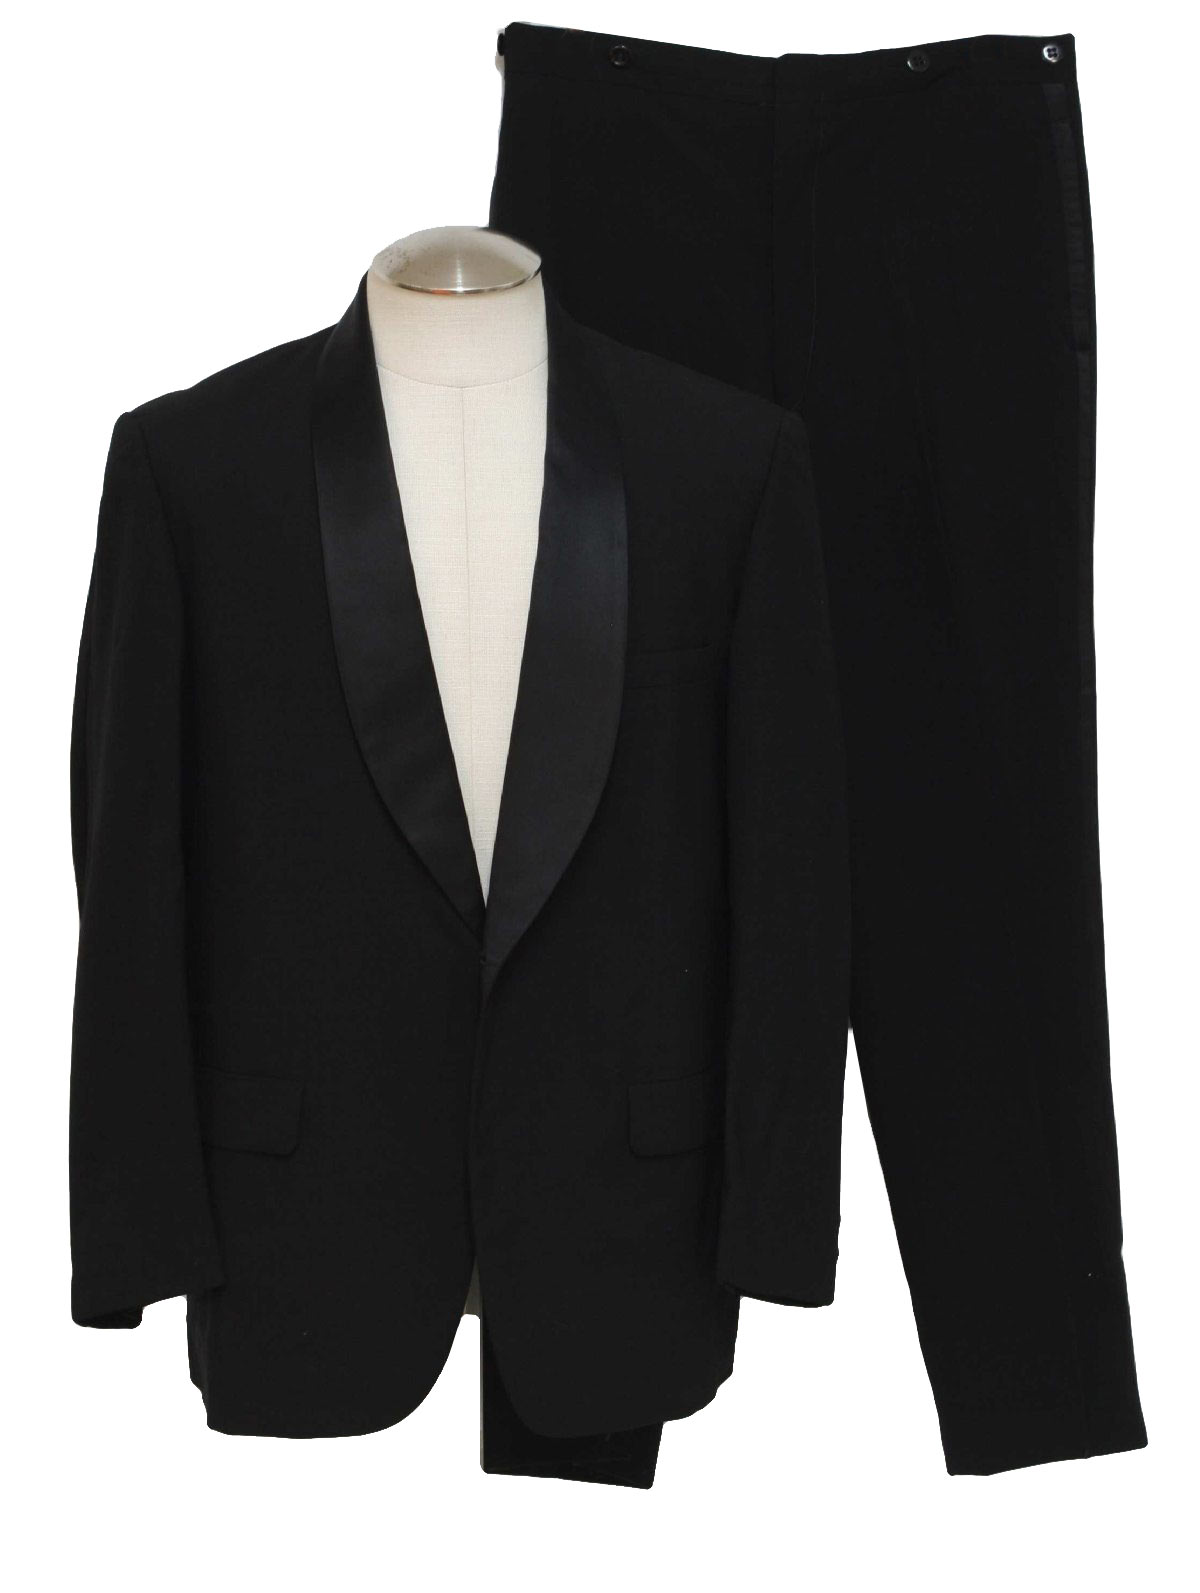 Retro 60s Suit Lord West 1961 Lord West Mens Two